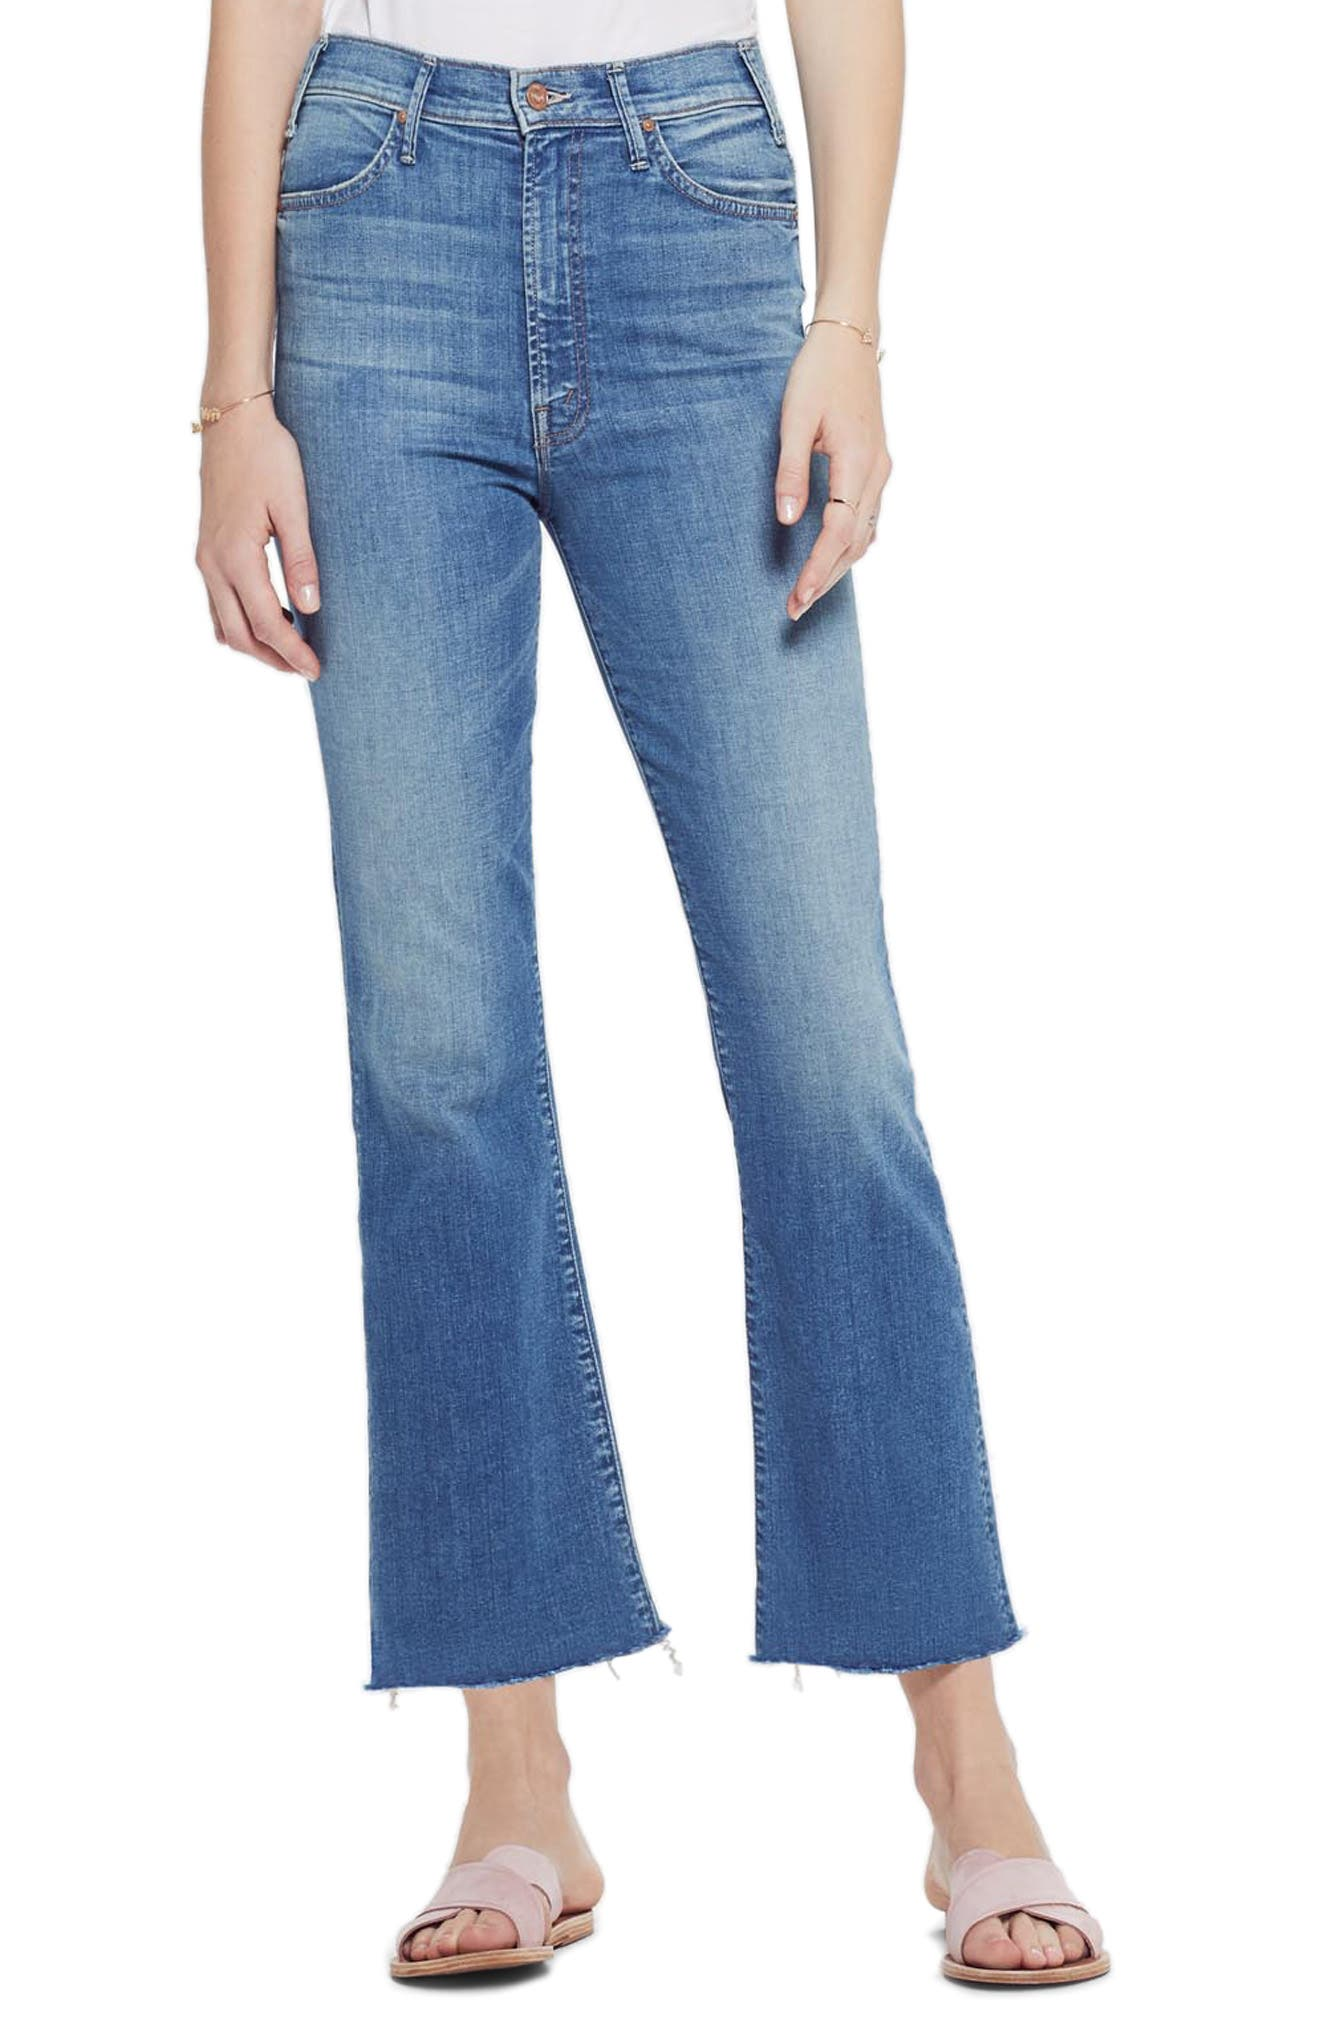 MOTHER, The Hustler High Waist Ankle Flare Jeans, Main thumbnail 1, color, WISHFUL DRINKING